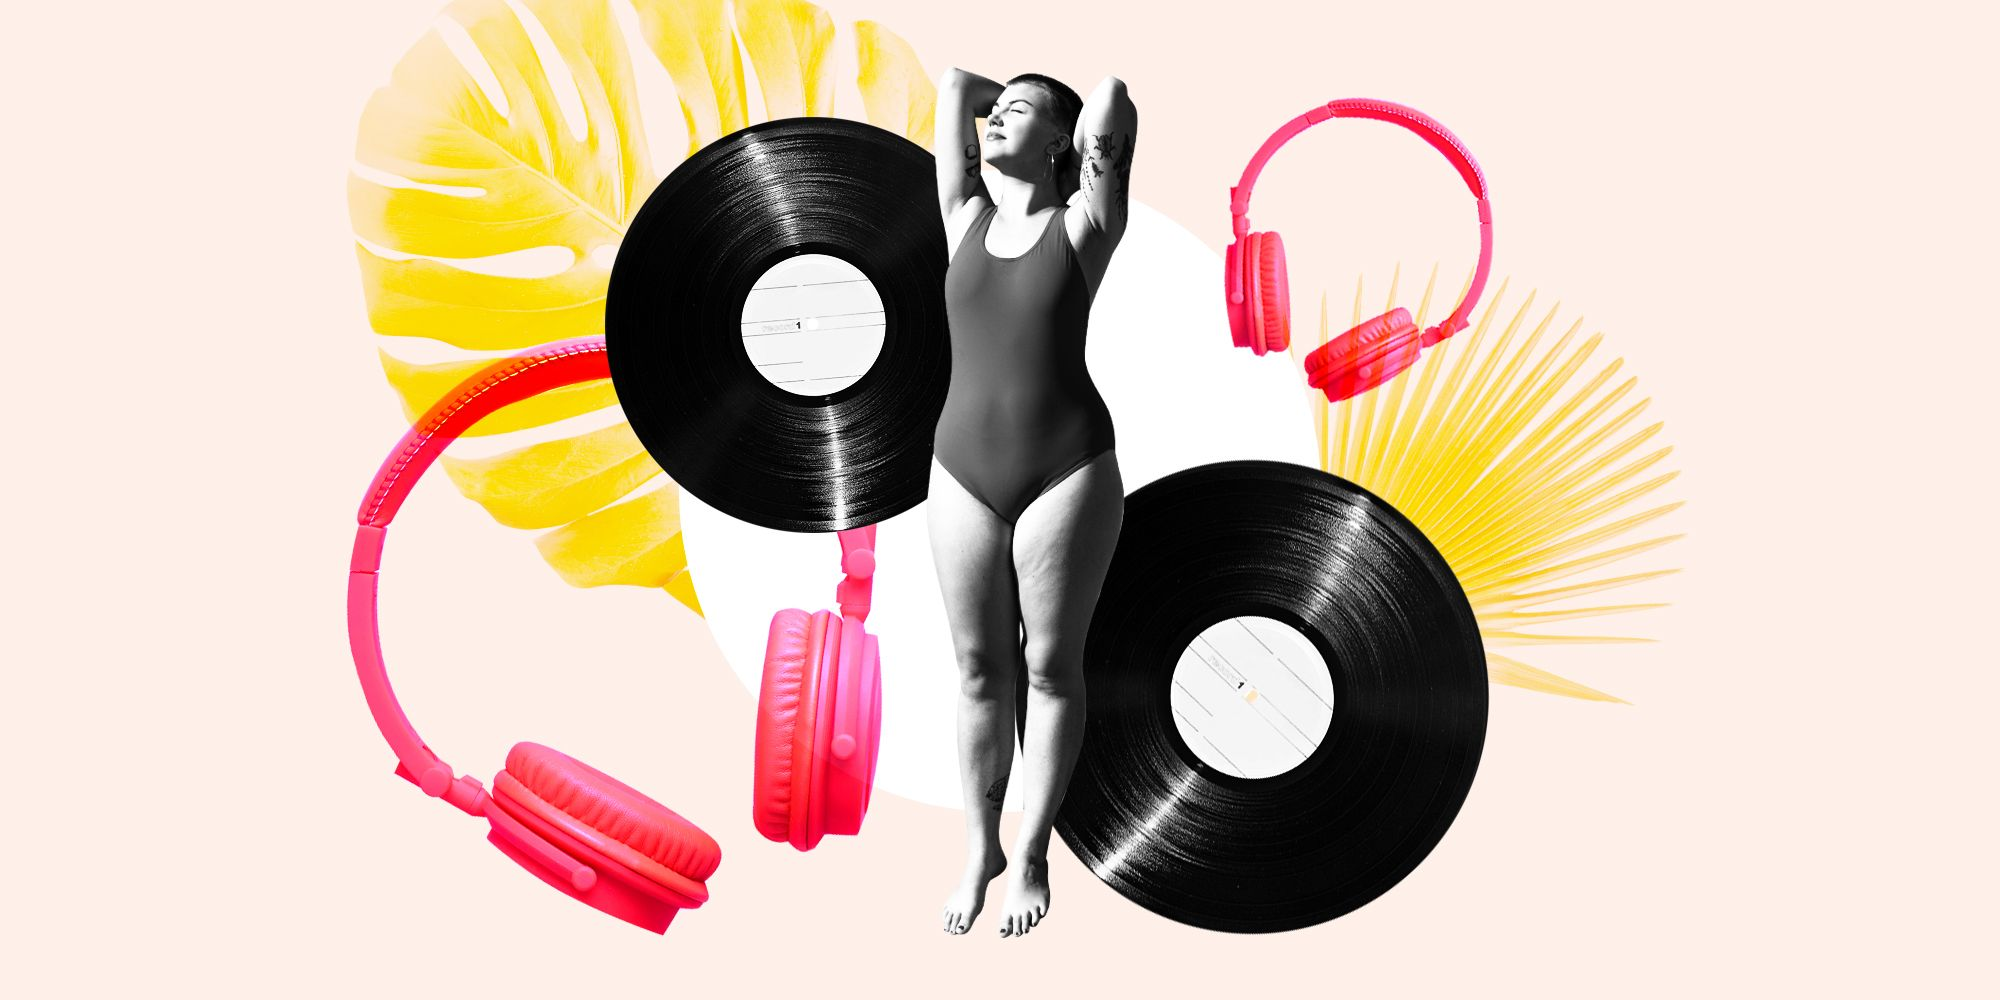 Best New Summer Songs 2019 - Summer Music Playlist